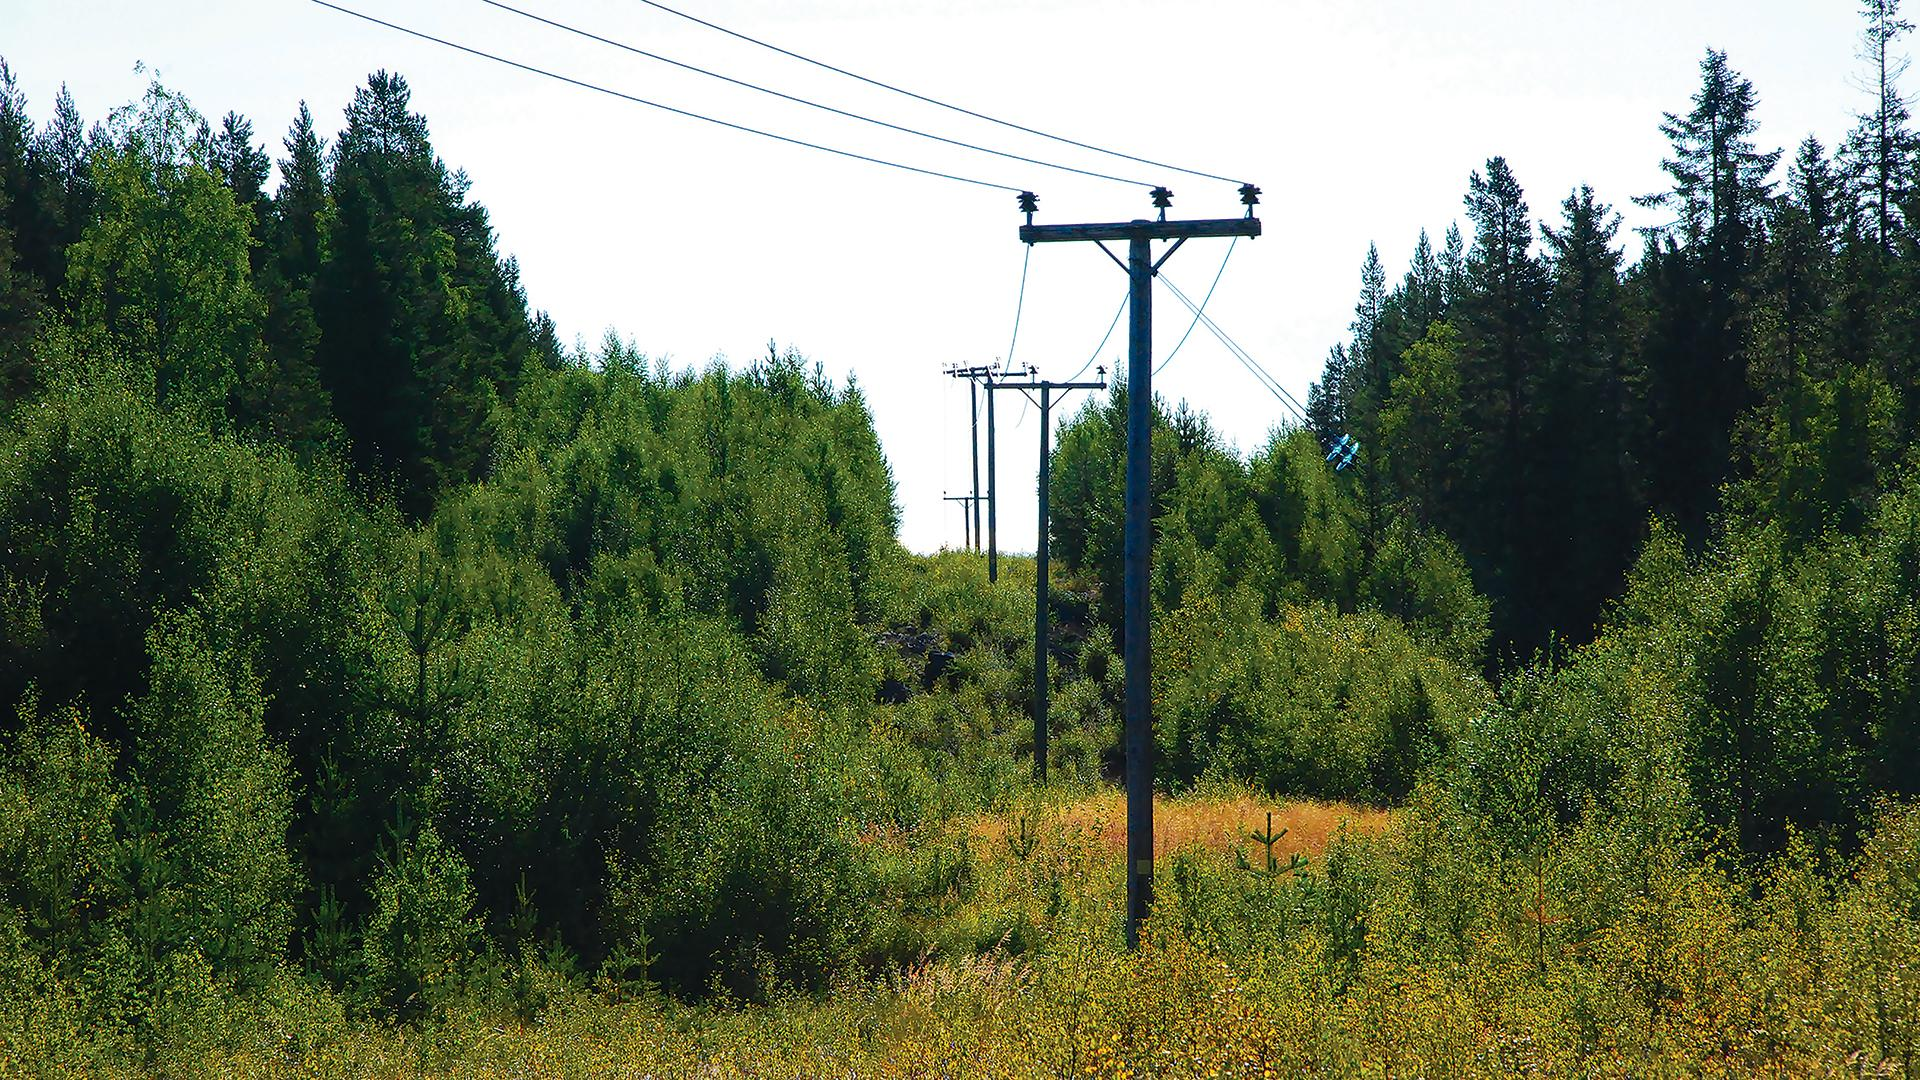 Power lines through a forest (Credit: Getty Images)